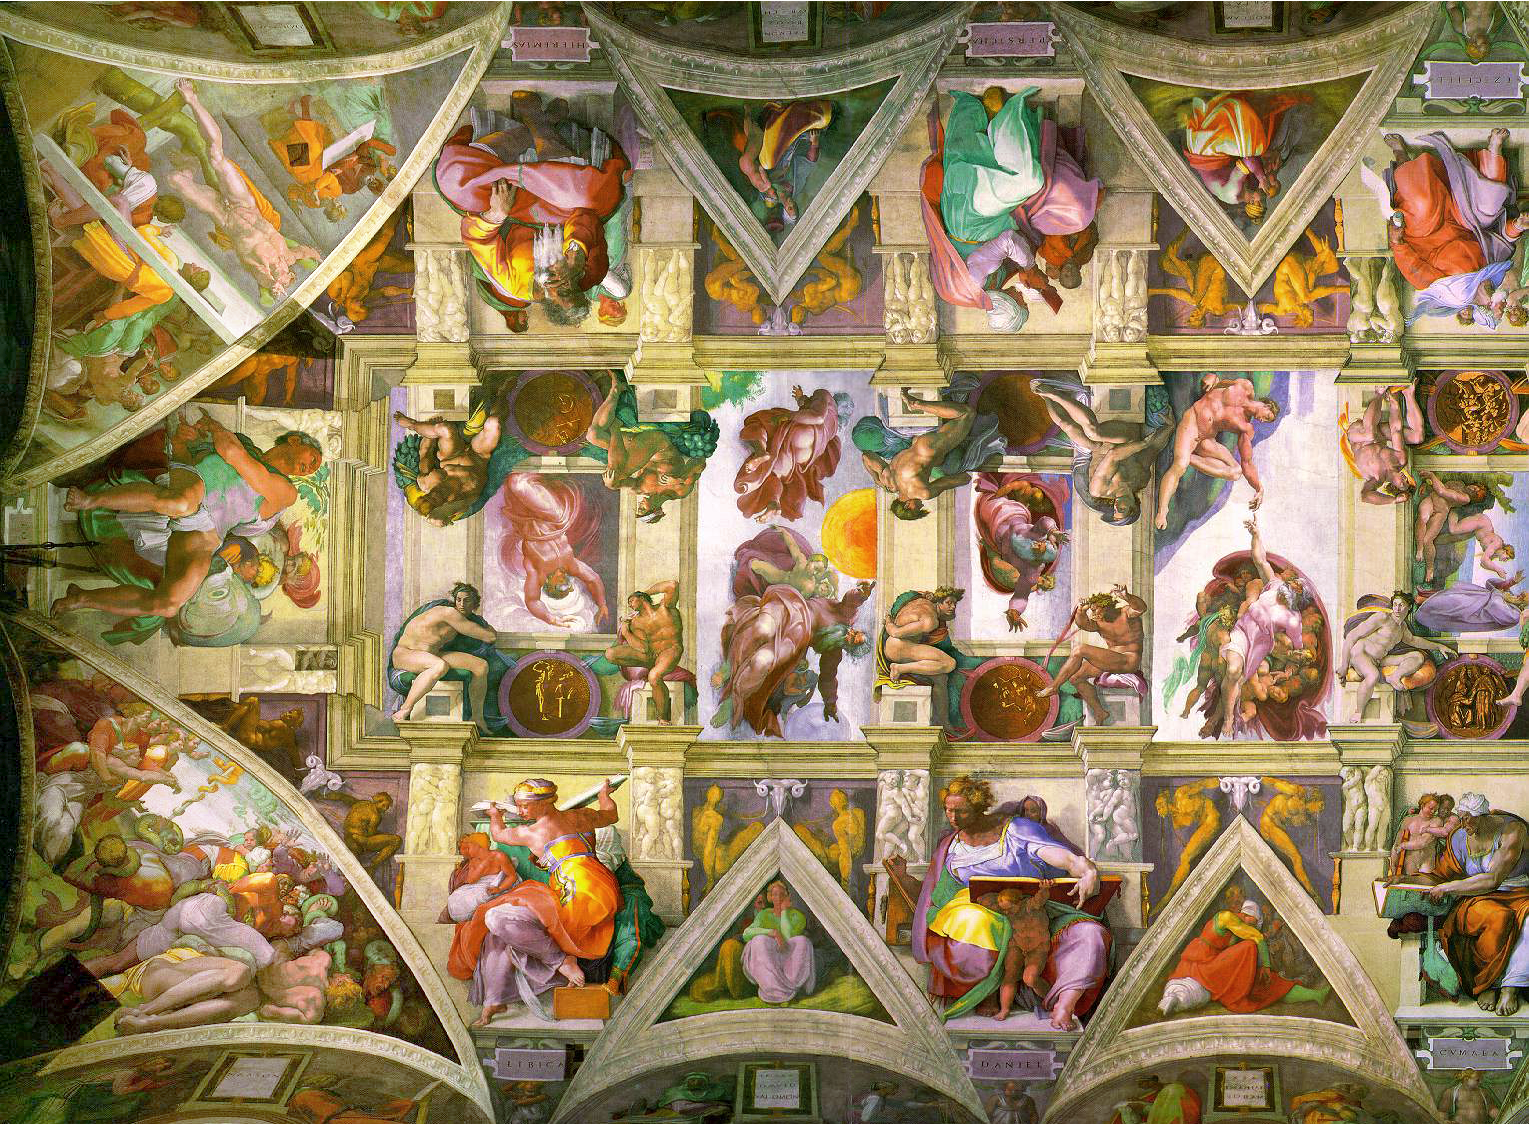 Michelangelo S Artwork On The Ceiling Of Sistine Chapel Image Free